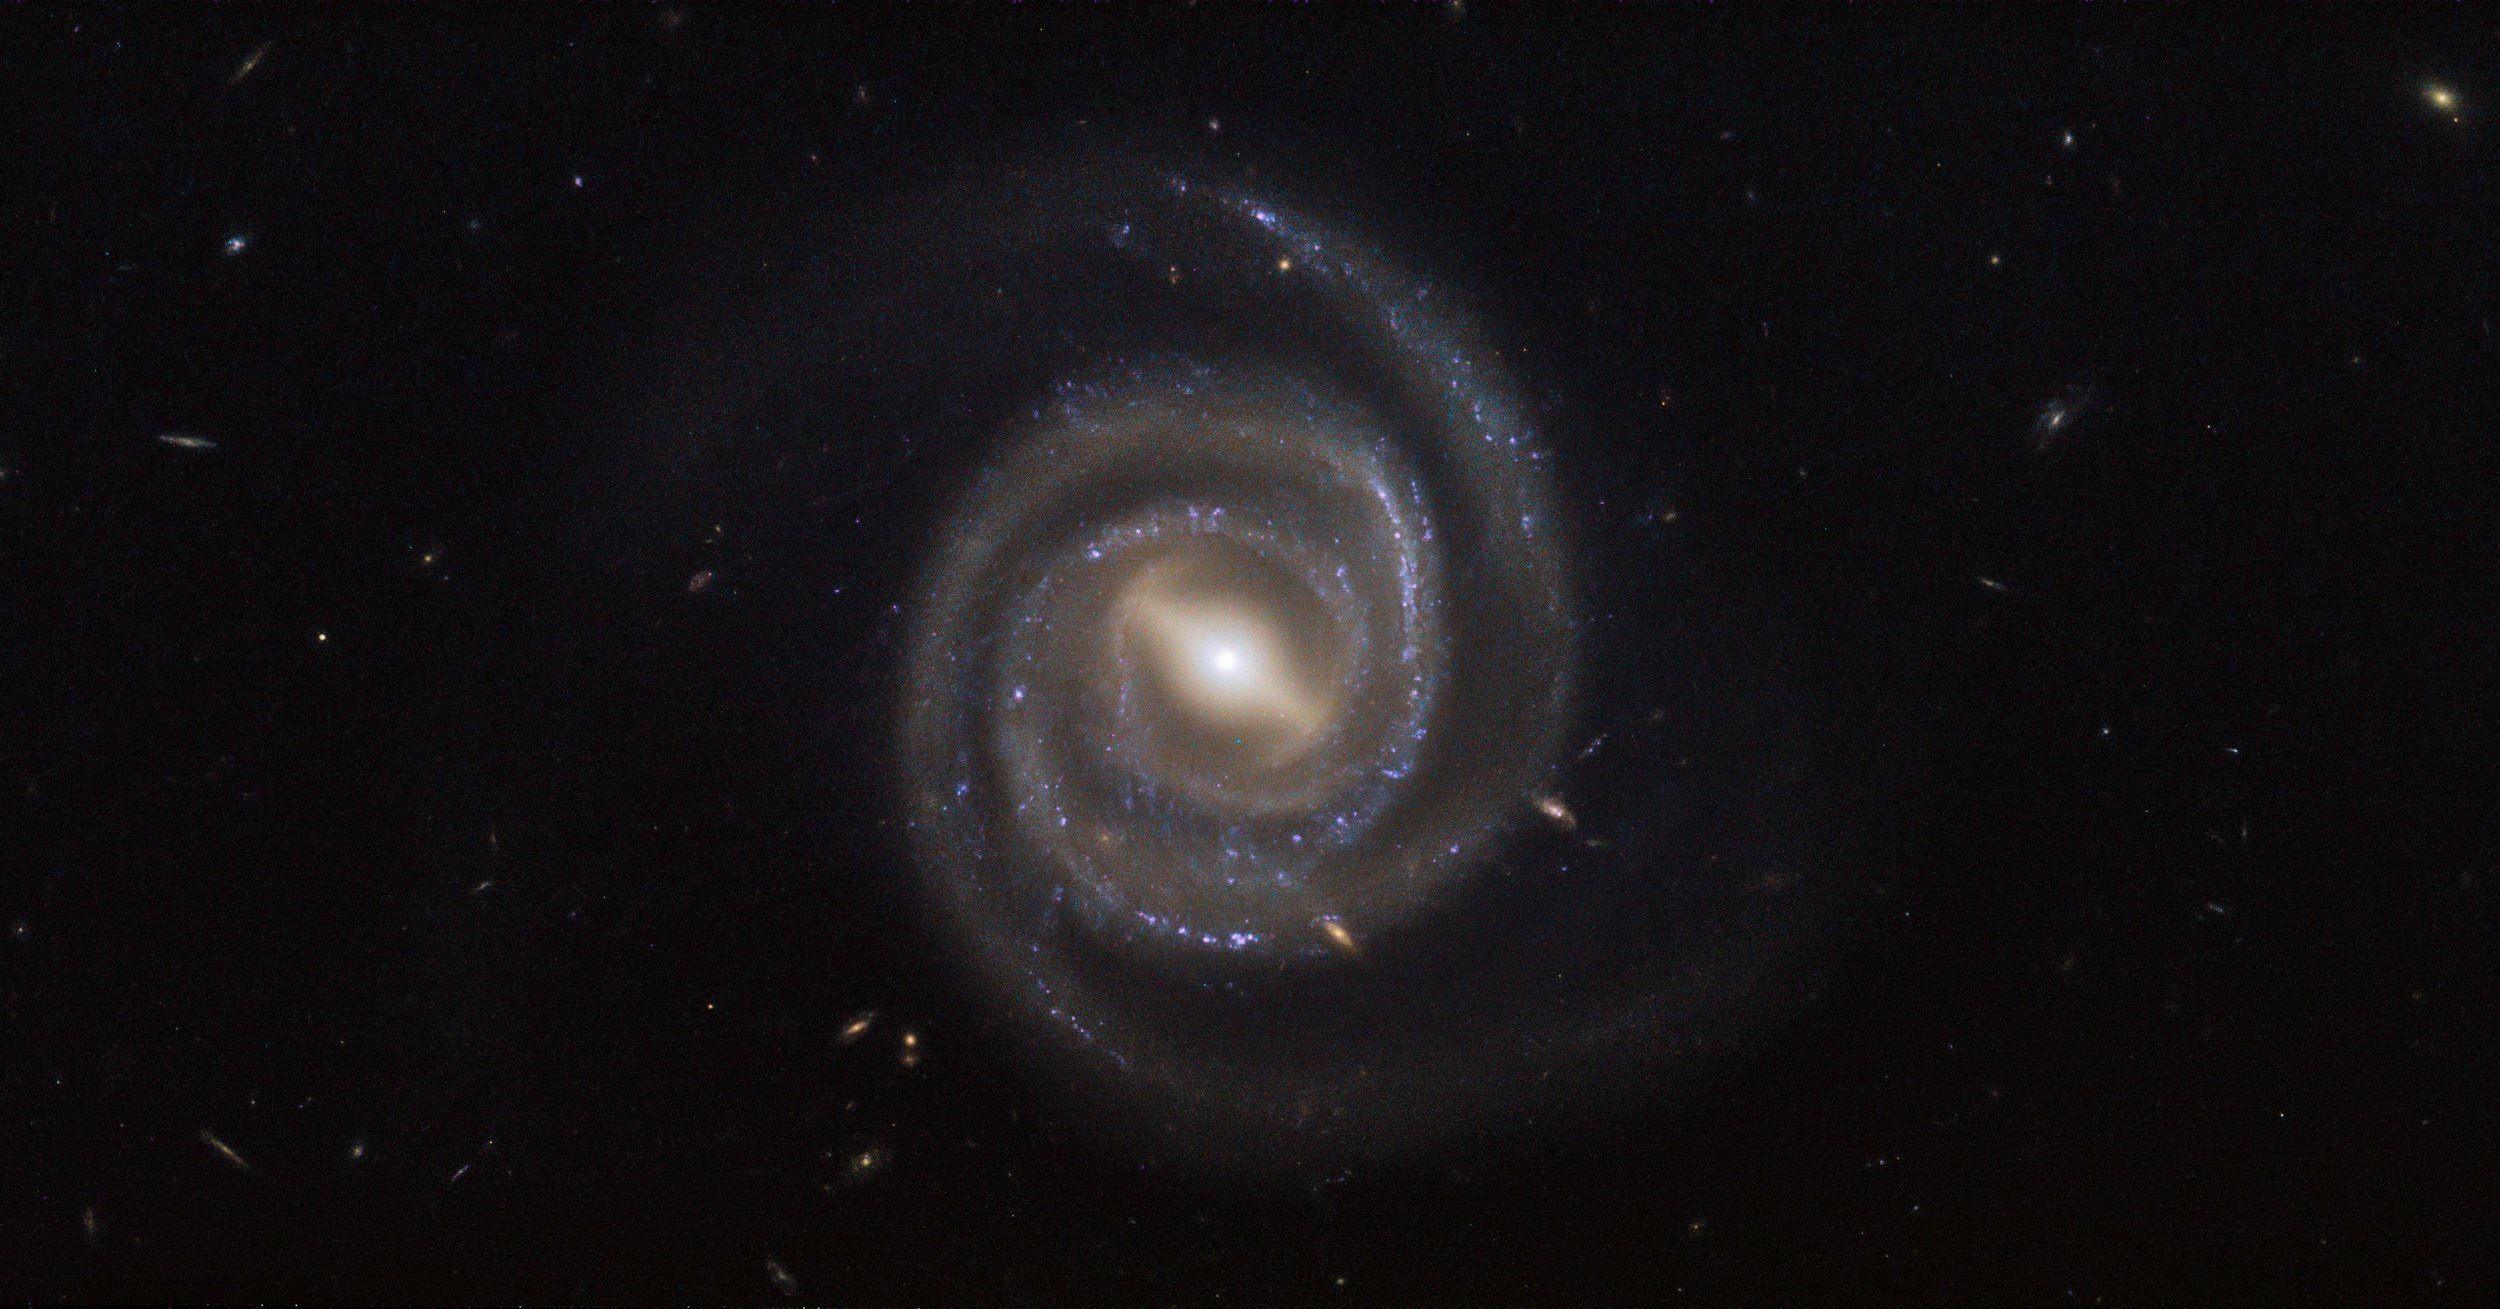 Hubble's Barred and Booming Spiral Galaxy. UGC 6093 is something known as a barred spiral galaxy — it has beautiful arms that swirl outwards from a bar slicing through the galaxy's center. From NASA Hubble images at https://www.nasa.gov/mission_pages/hubble/multimedia/index.html.